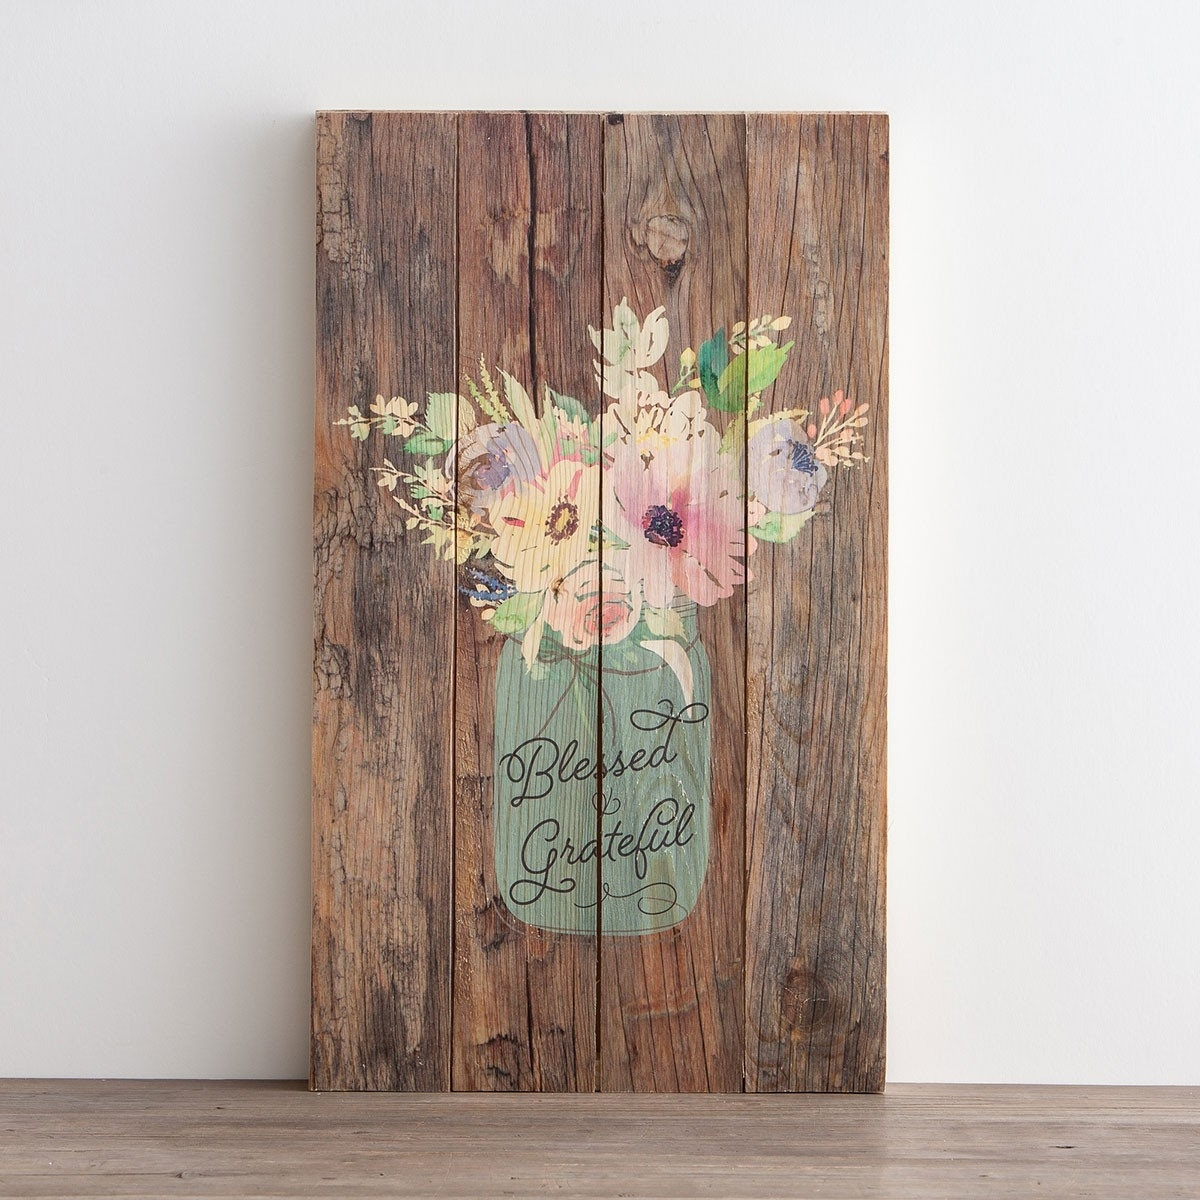 Blessed & Grateful – Plank Wall Art | Dayspring Within Most Up To Date Plank Wall Art (View 3 of 20)